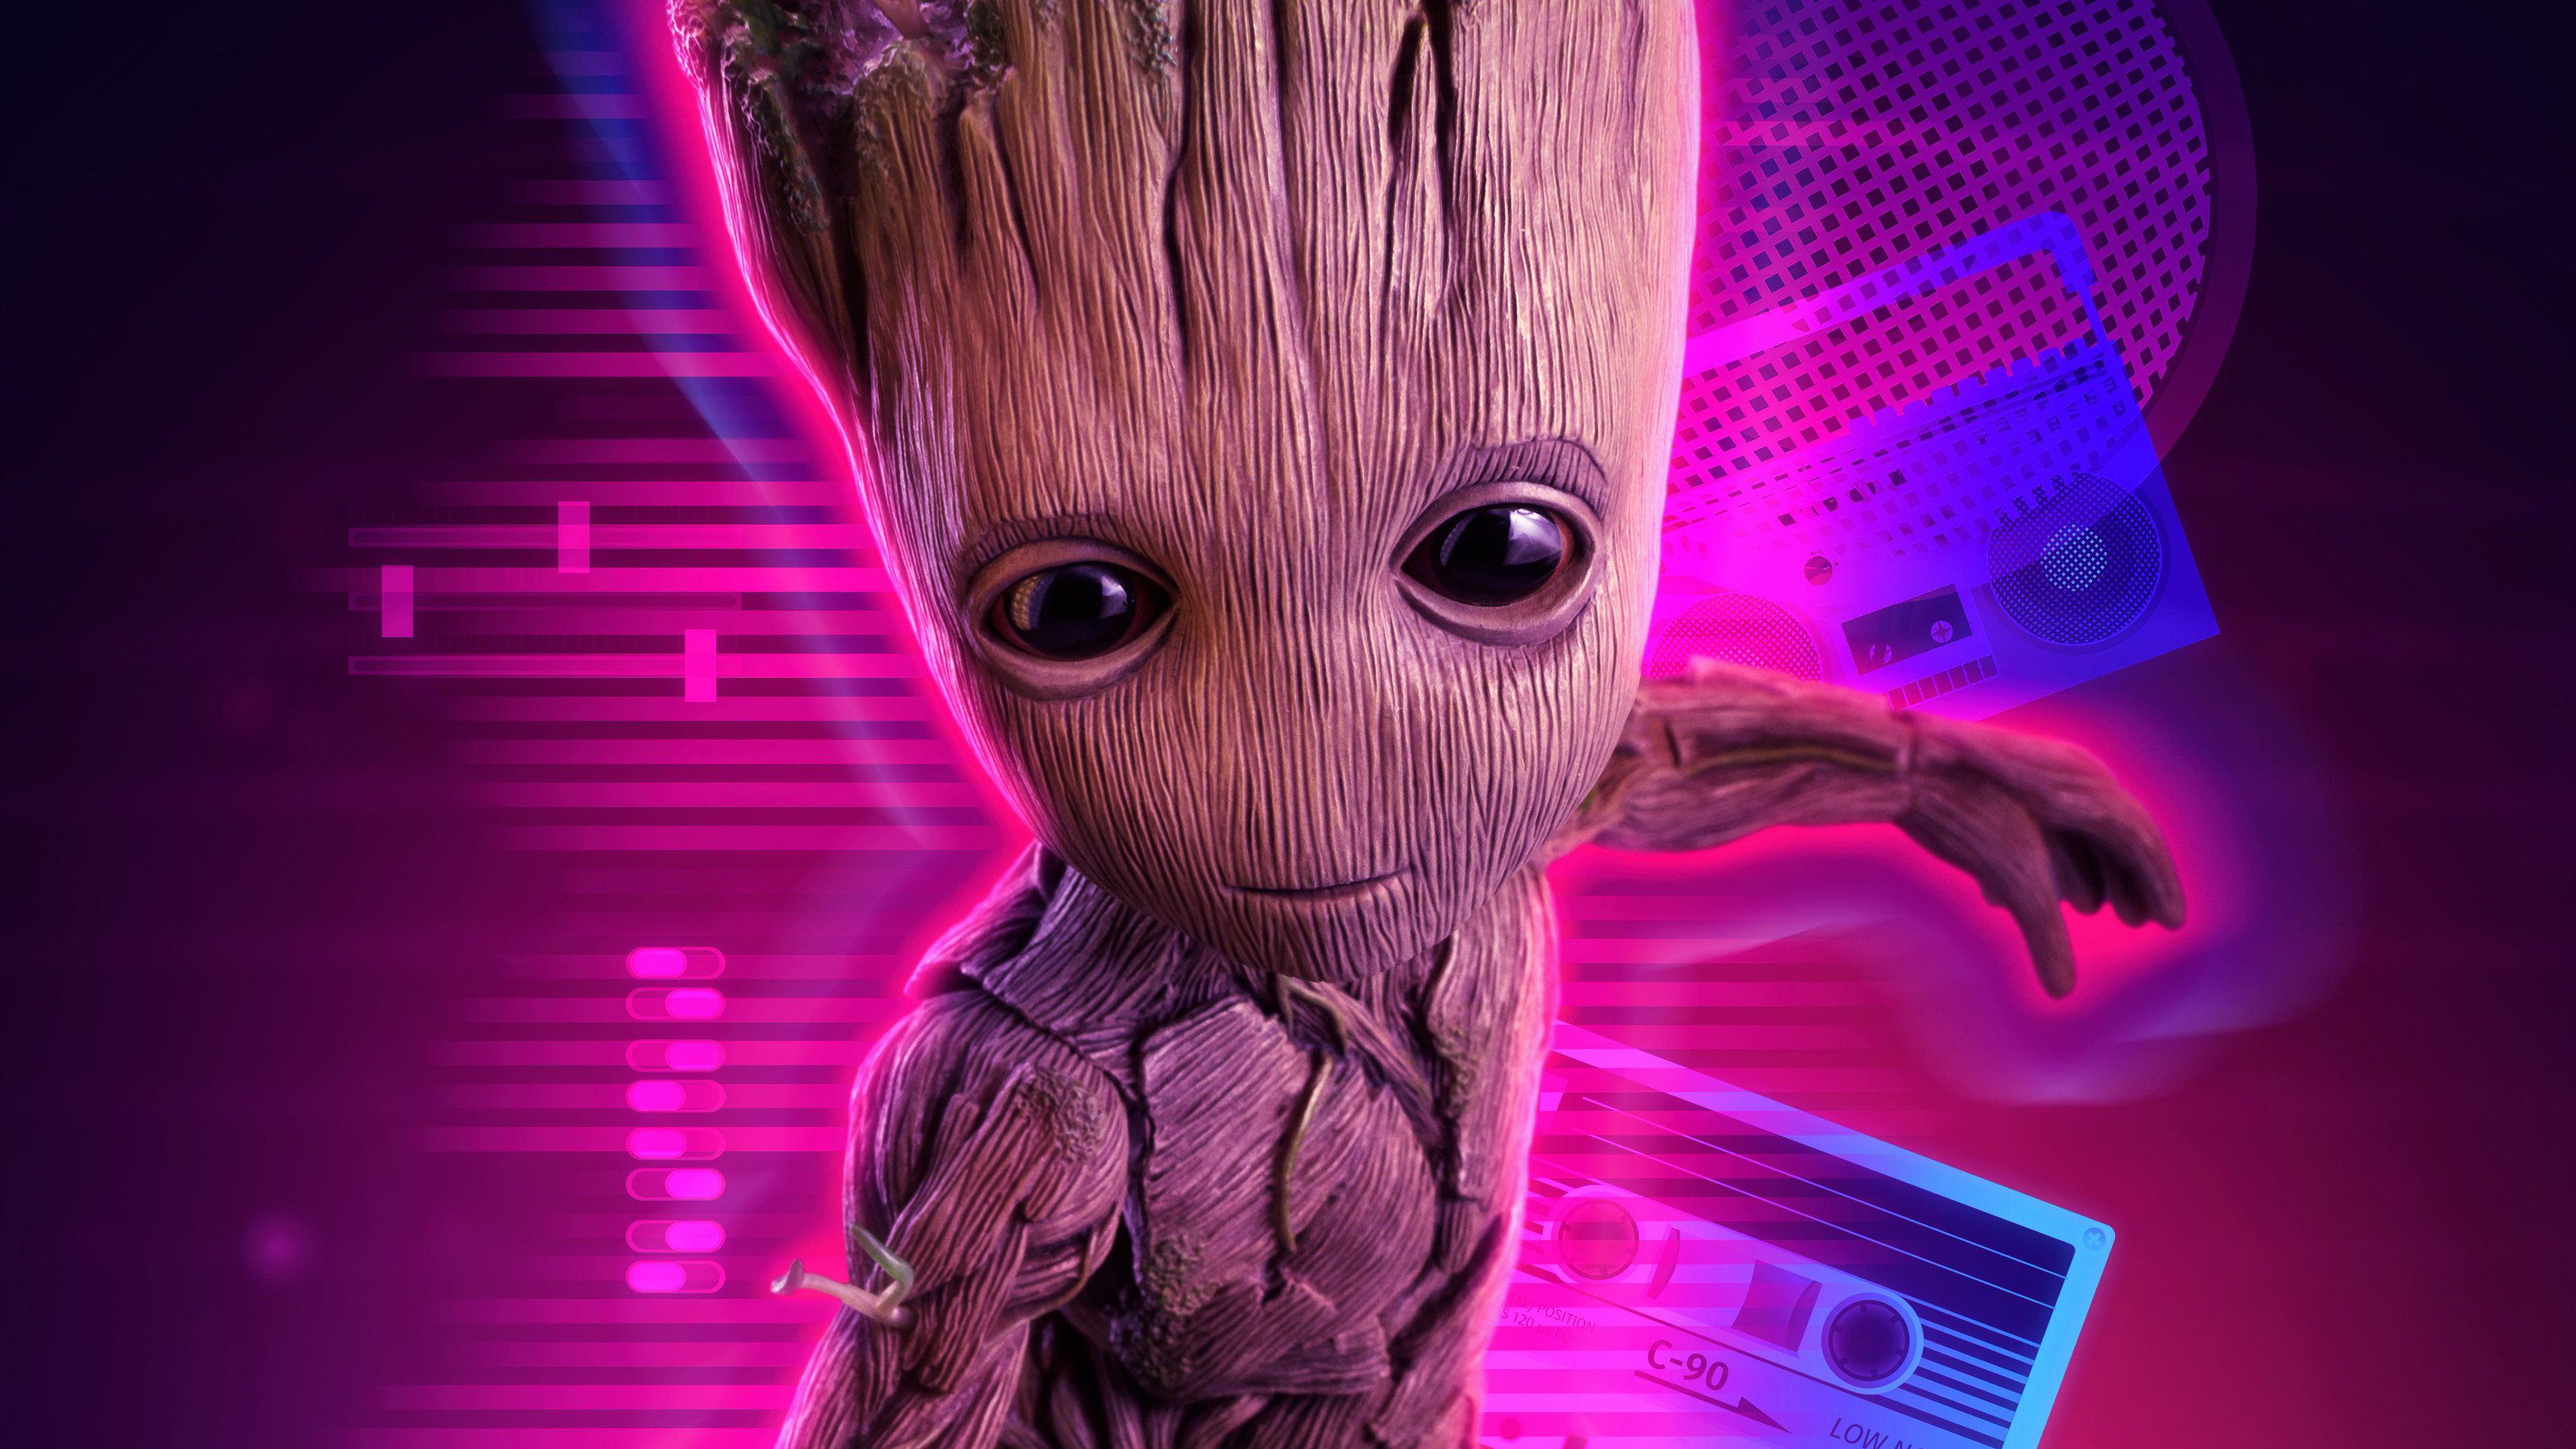 2560x1080 4k Baby Groot 2560x1080 Resolution Hd 4k Wallpapers Images Backgrounds Photos And Pictures